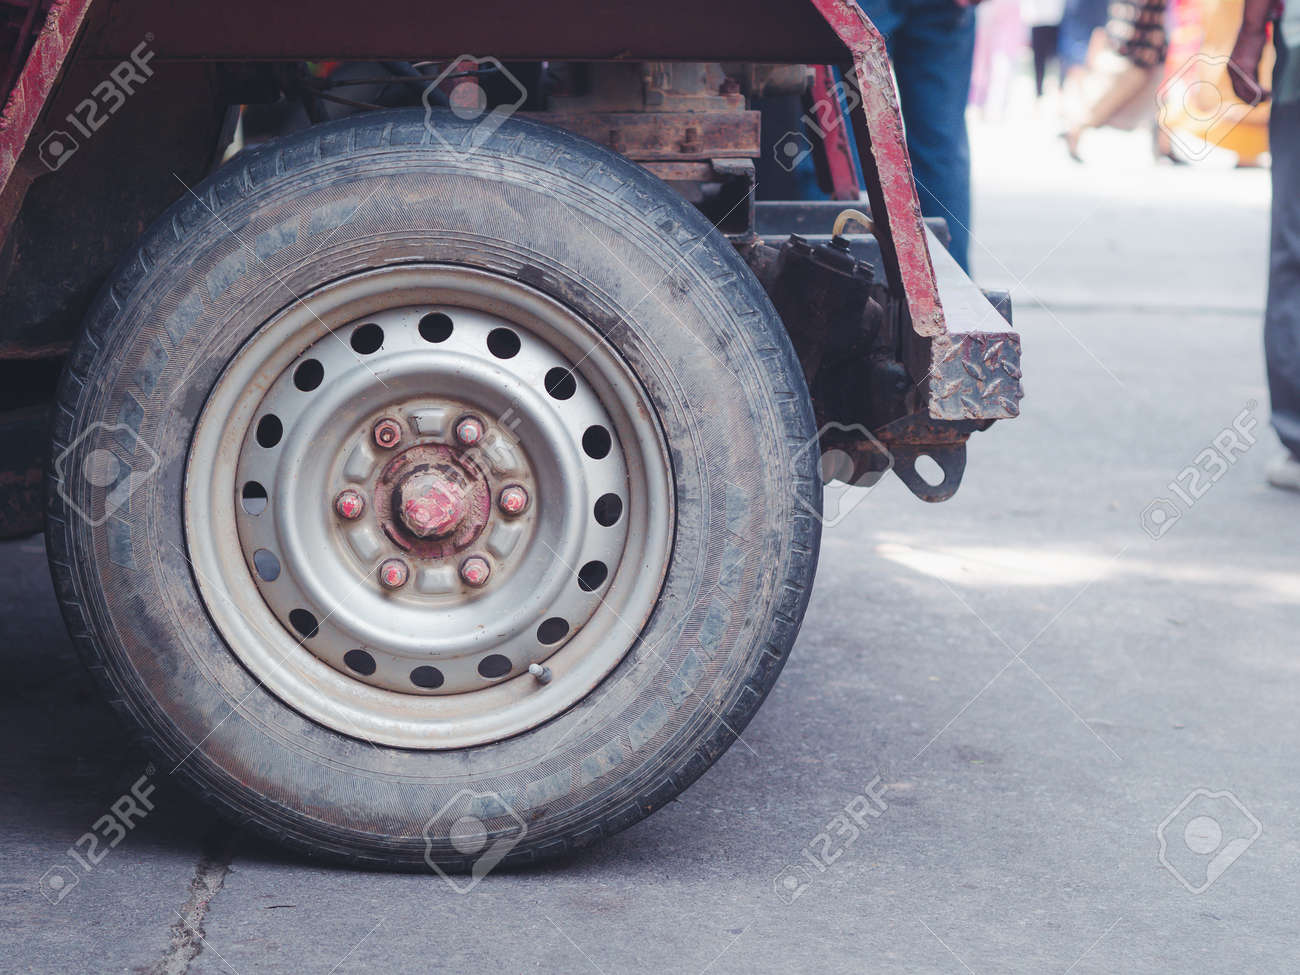 Close-up photo of a car wheel of E-taen Thai tractor. Space for text. - 165074422